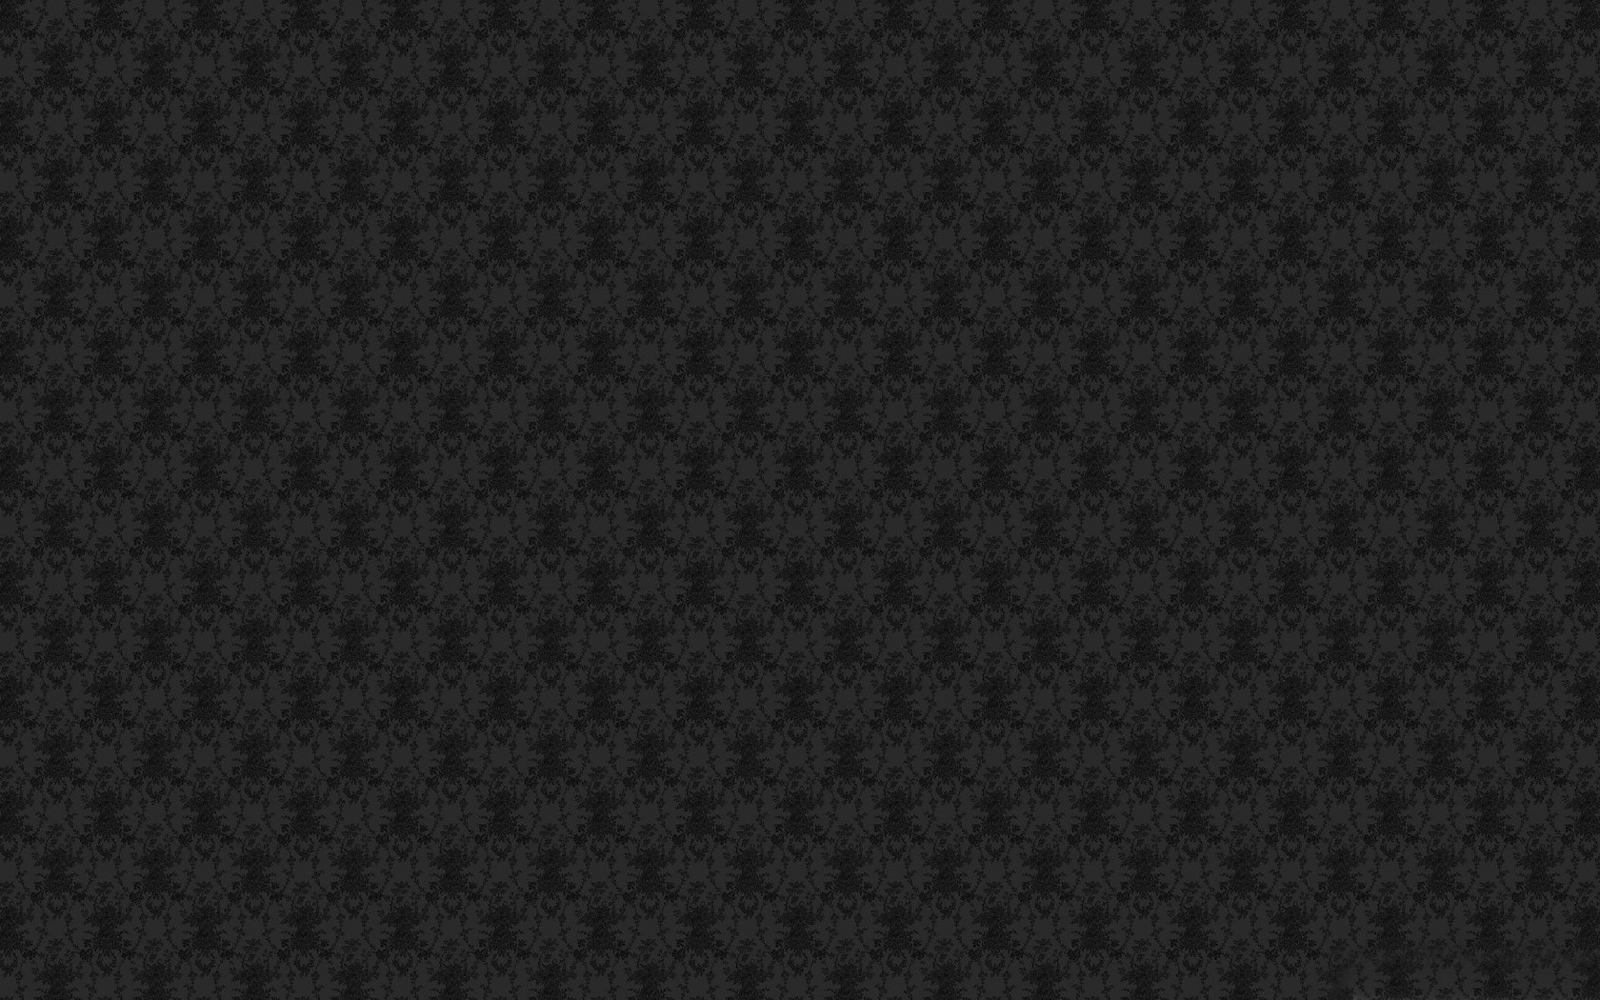 Black-Damask-Background-